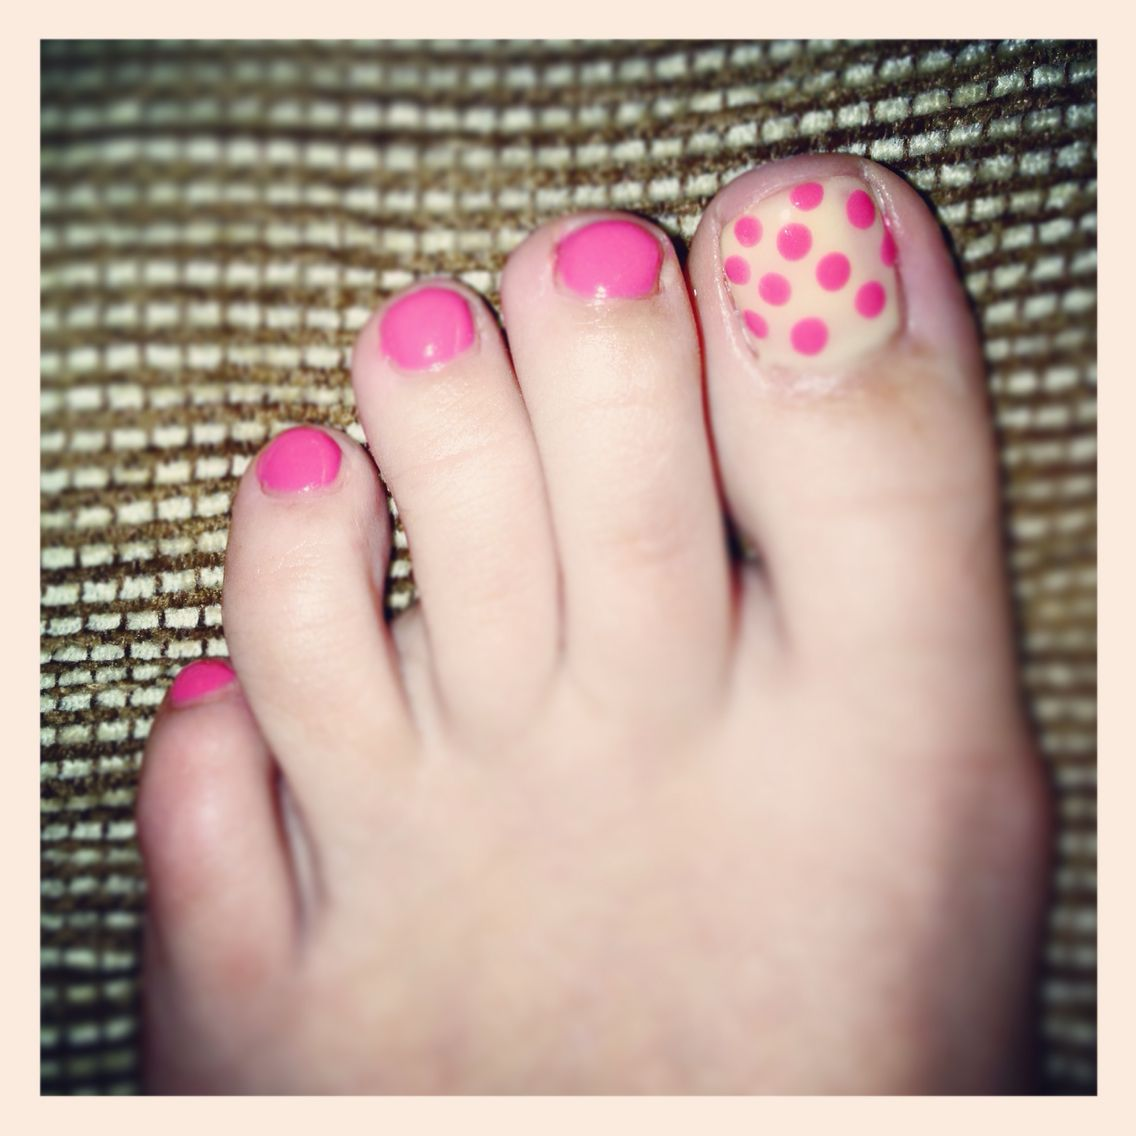 Toes need to be pretty too- cute deign using IBD polish and dotting tools.